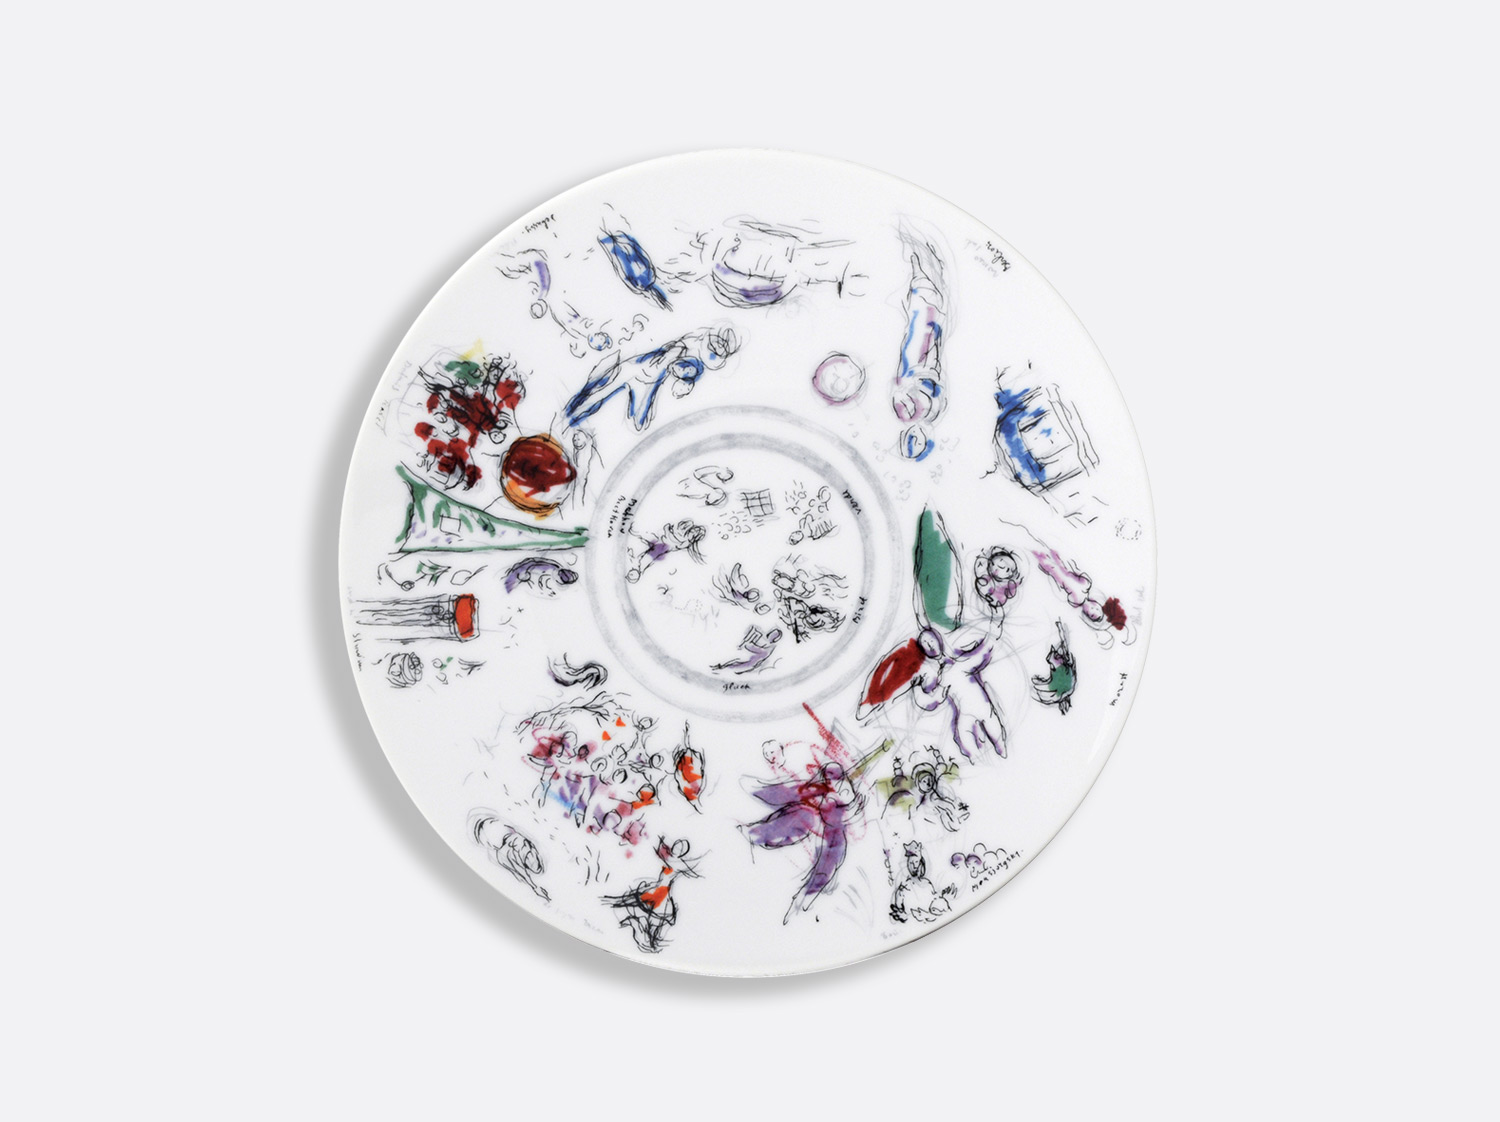 Collectionmarcchagall assiette21opera1 %c2%a9 adagp  paris  2020   chagall